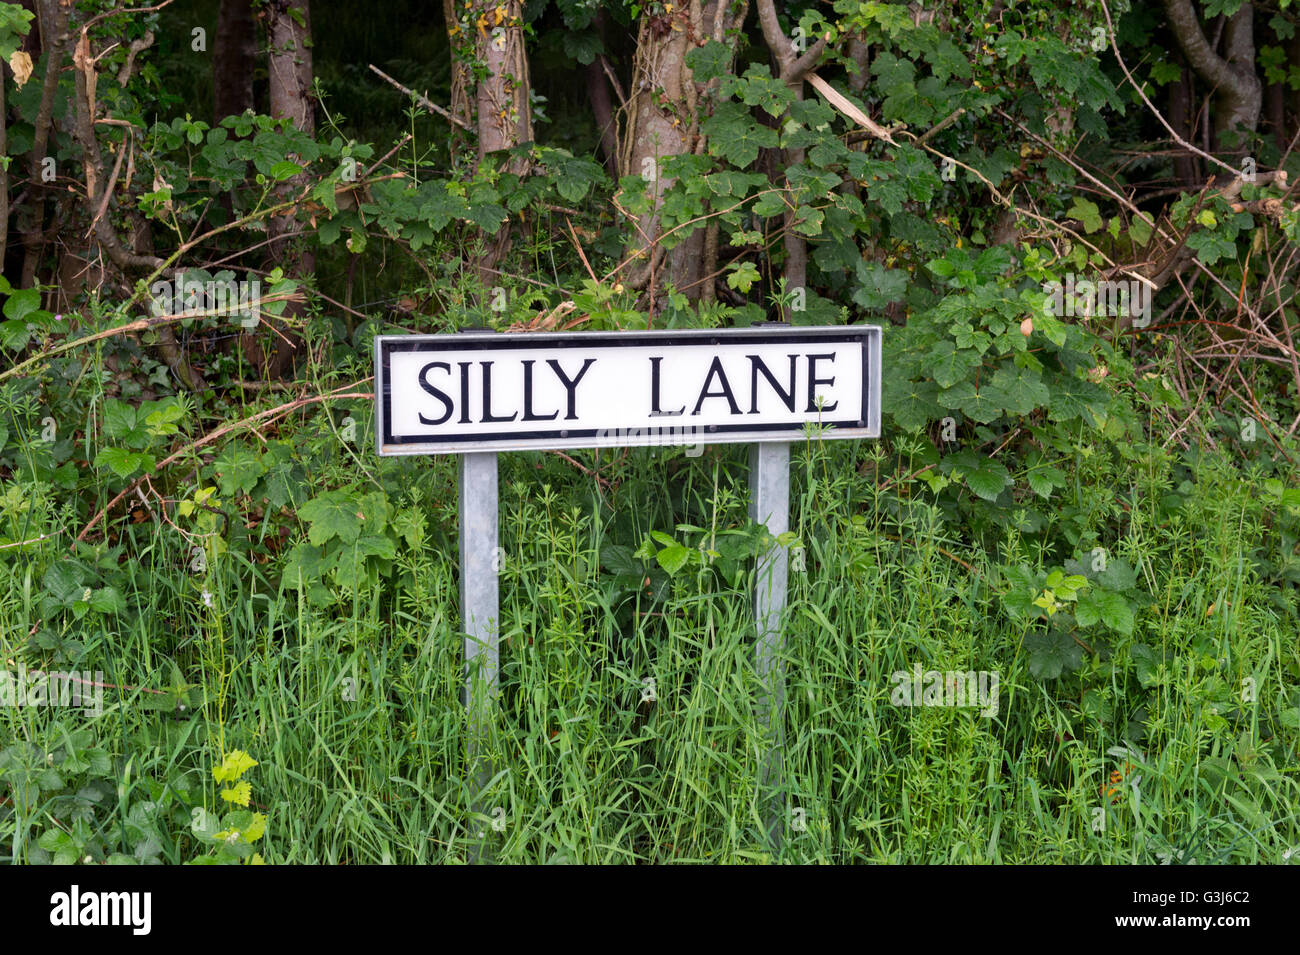 Silly Lane, road sign, Lowgill, Lancashire, UK - Stock Image